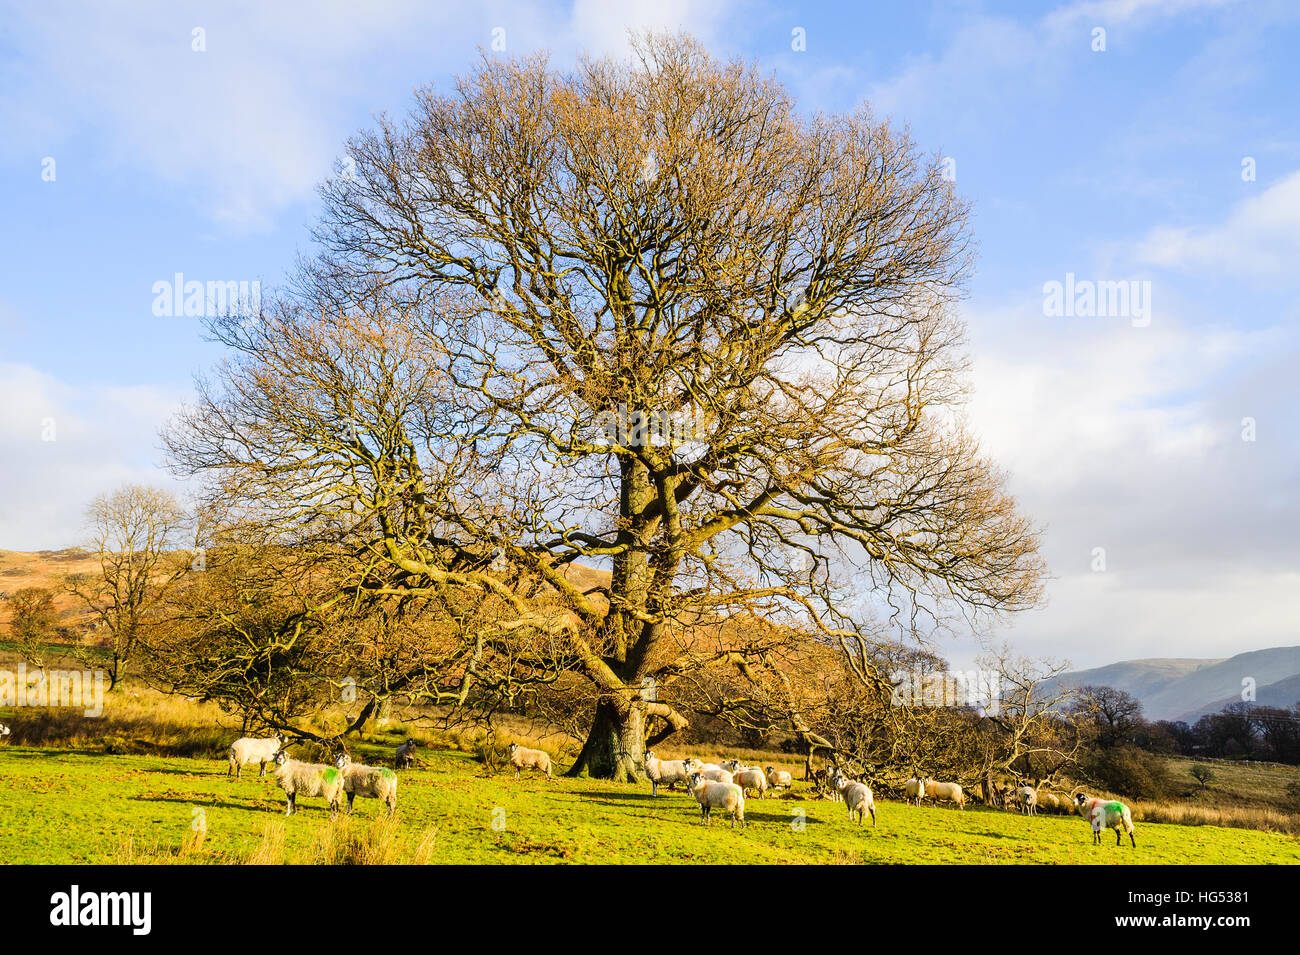 Sheep and oak tree at Glencoyne Park above Ullswater in the Lake District Stock Photo